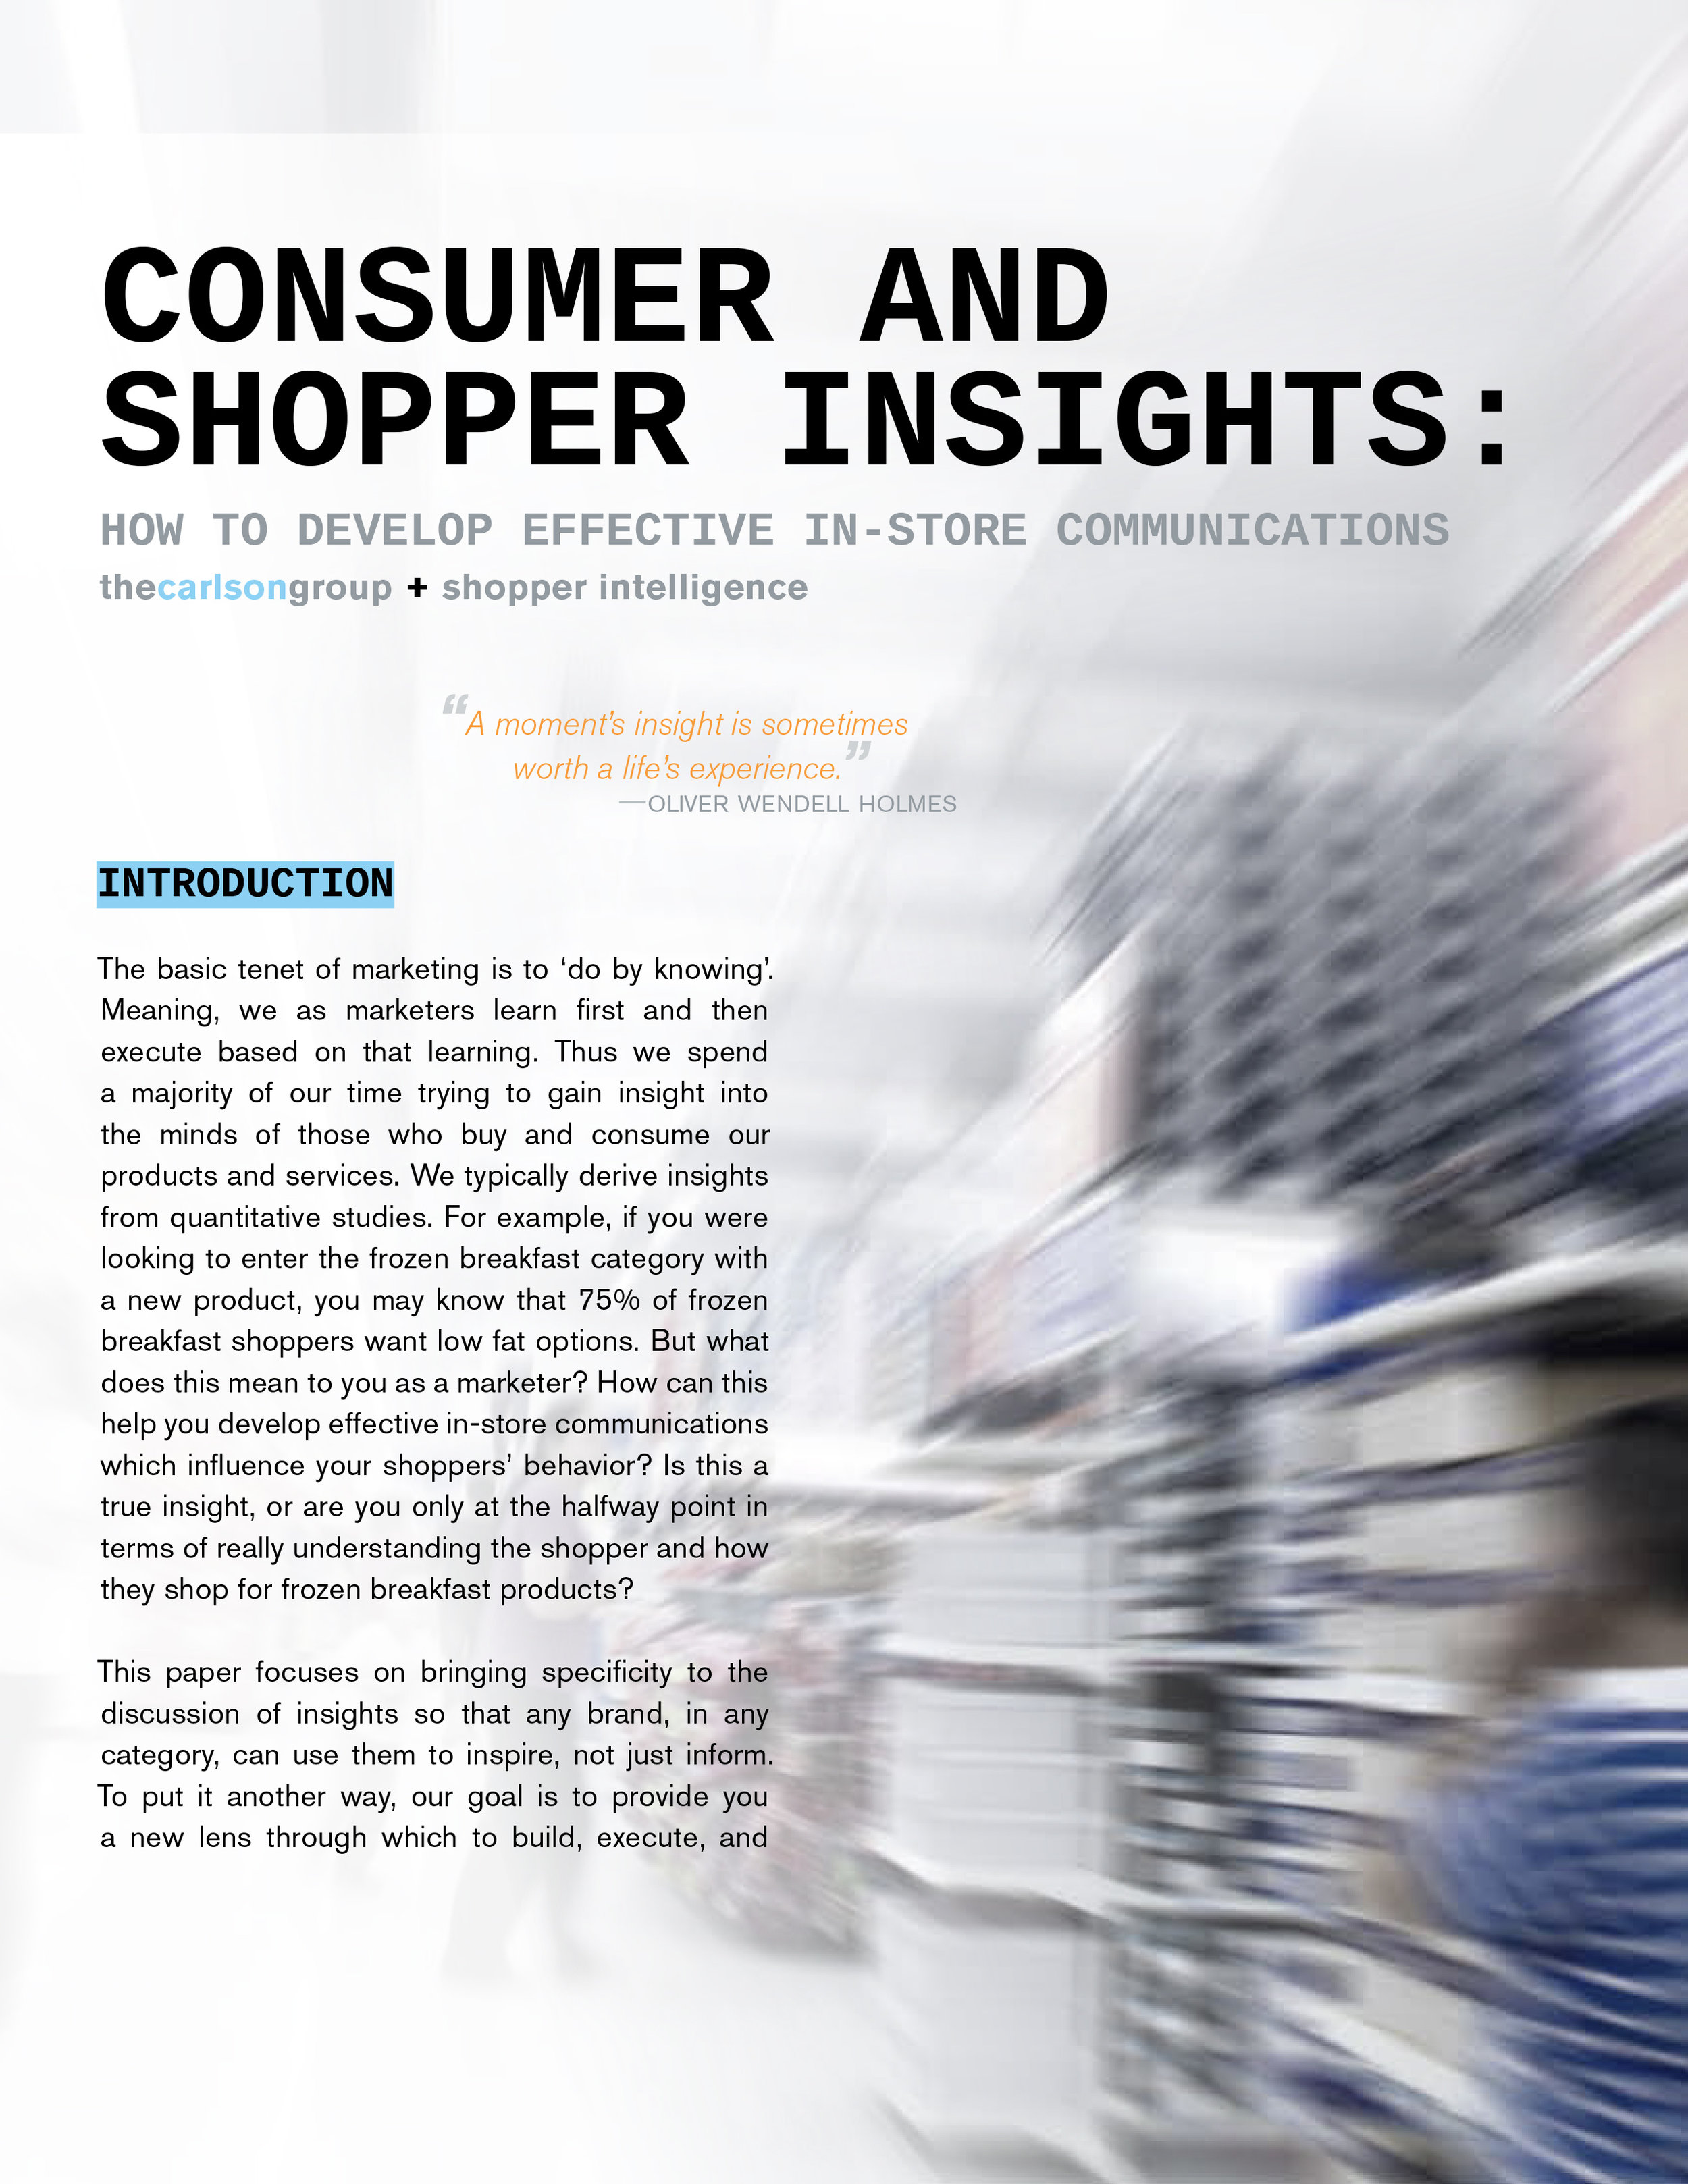 CONSUMER AND SHOPPER INSIGHTS